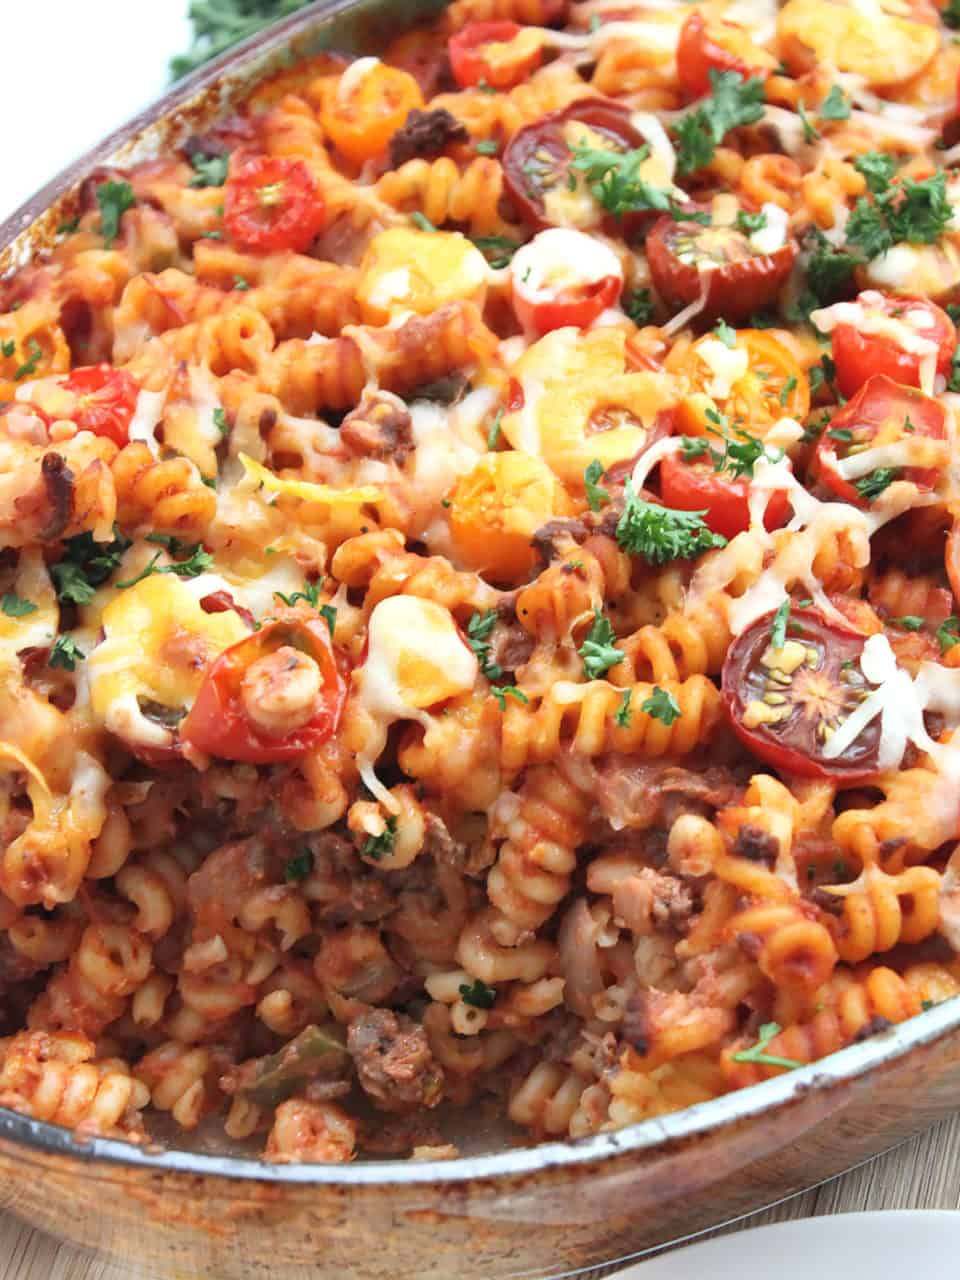 Close up of the pasta bake with a spoonful taken out of it.